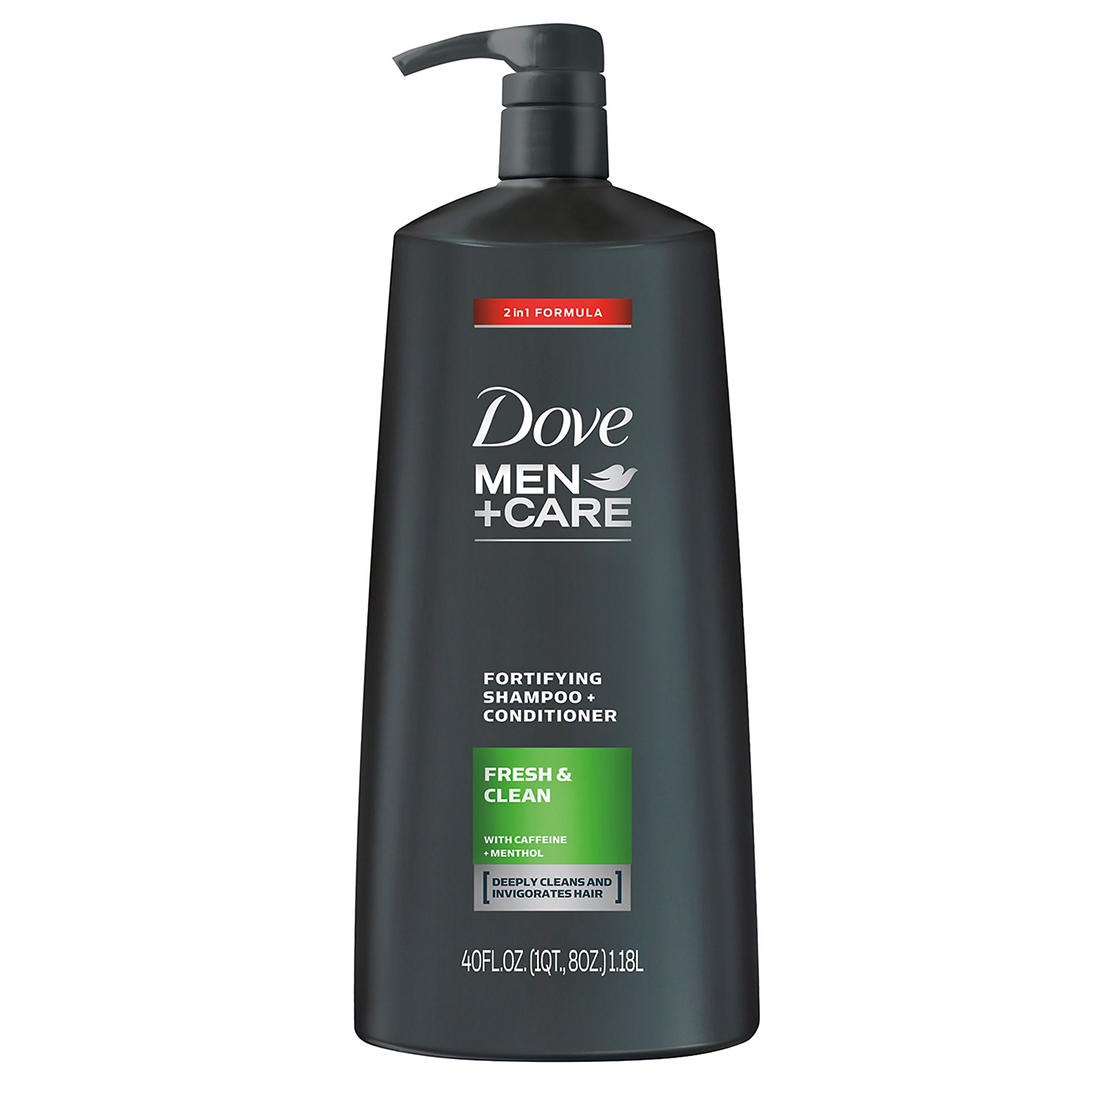 Dove Men Care Fresh And Clean 2 In 1 Shampoo And Conditioner 40 Oz Bjs Wholesale Club